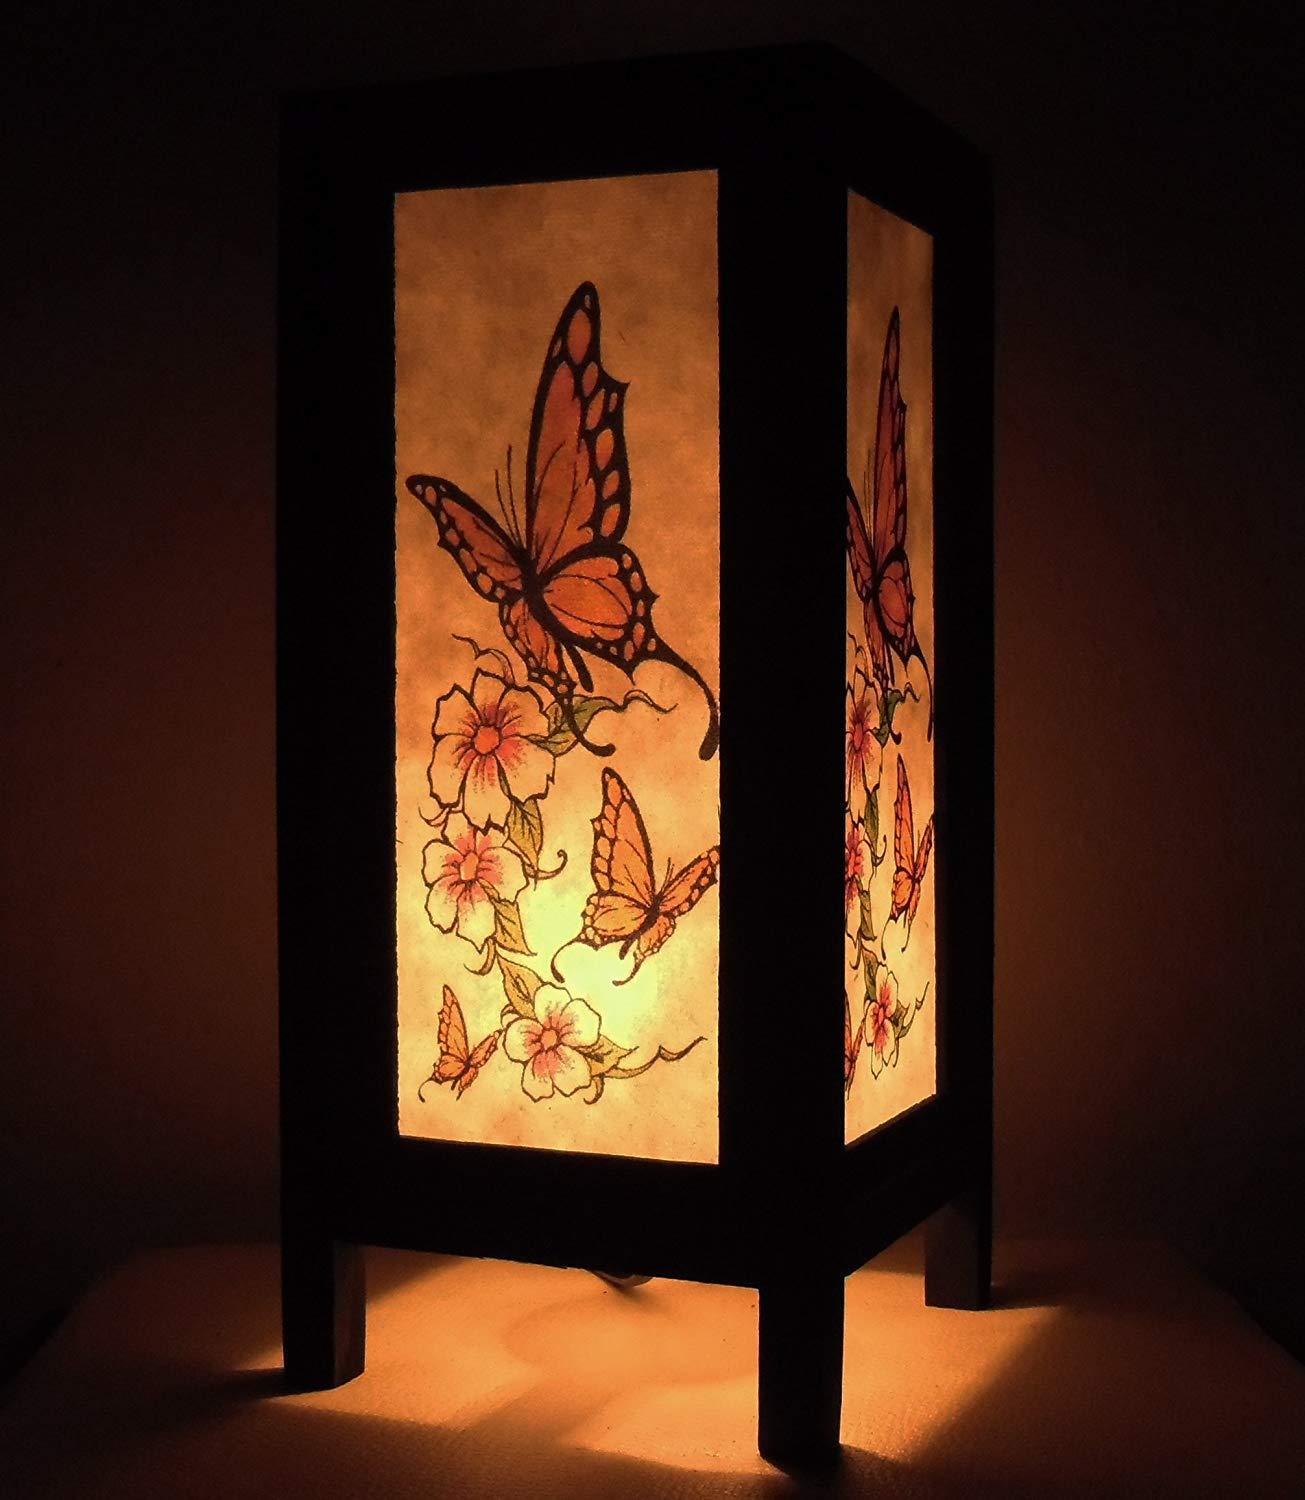 Thai Vintage Handmade Asian Oriental Butterfly Bedside Table Light or Floor Wood Paper Lamp Shades Home Bedroom Garden Decor Modern Design from Thailand by Red berry Thailand Lanna Lamp